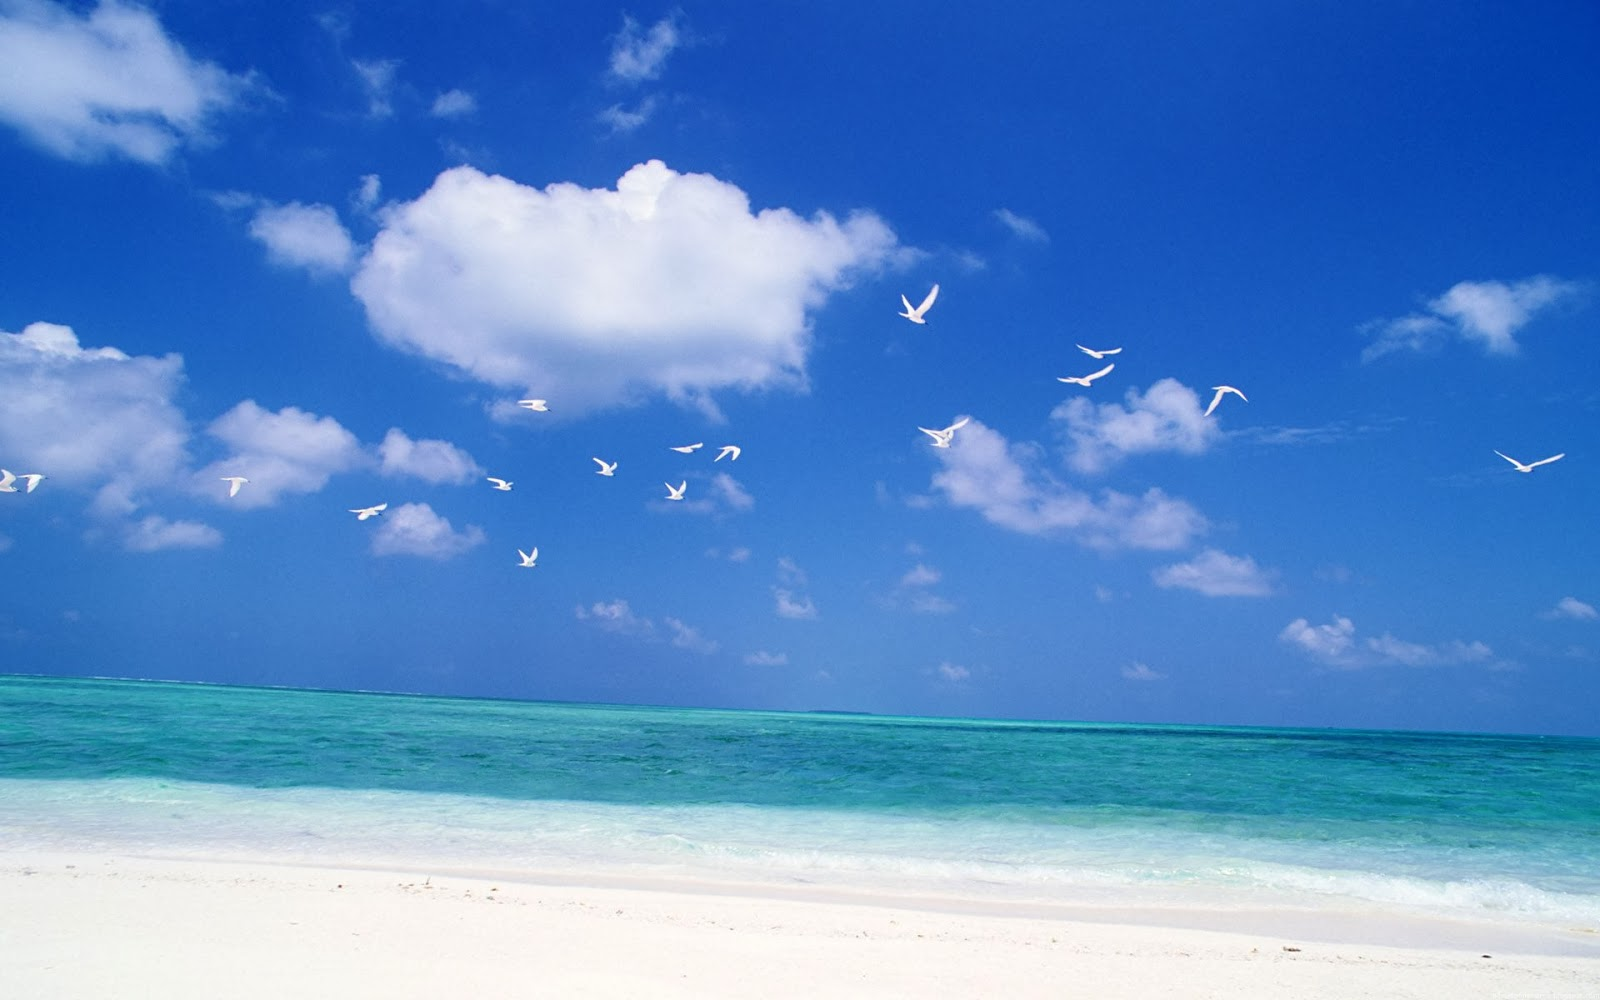 beautiful nature images and wallpapers: sky beach | beautiful nature